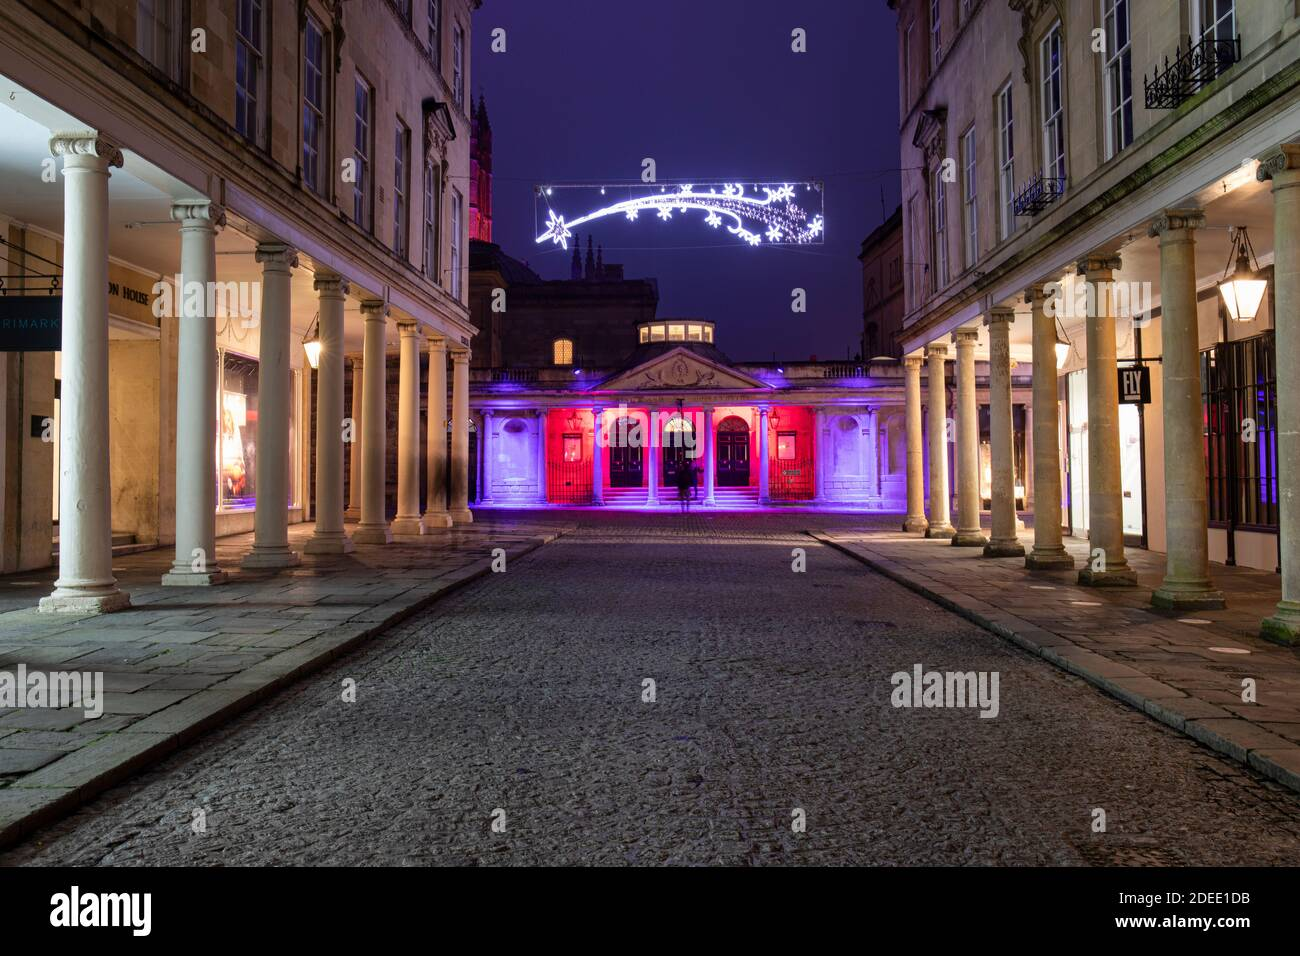 The Romans Baths lit with colourful festive projected illuminations part of the 2020 Christmas Lights display. Bath City Centre, Somerset, England UK Stock Photo